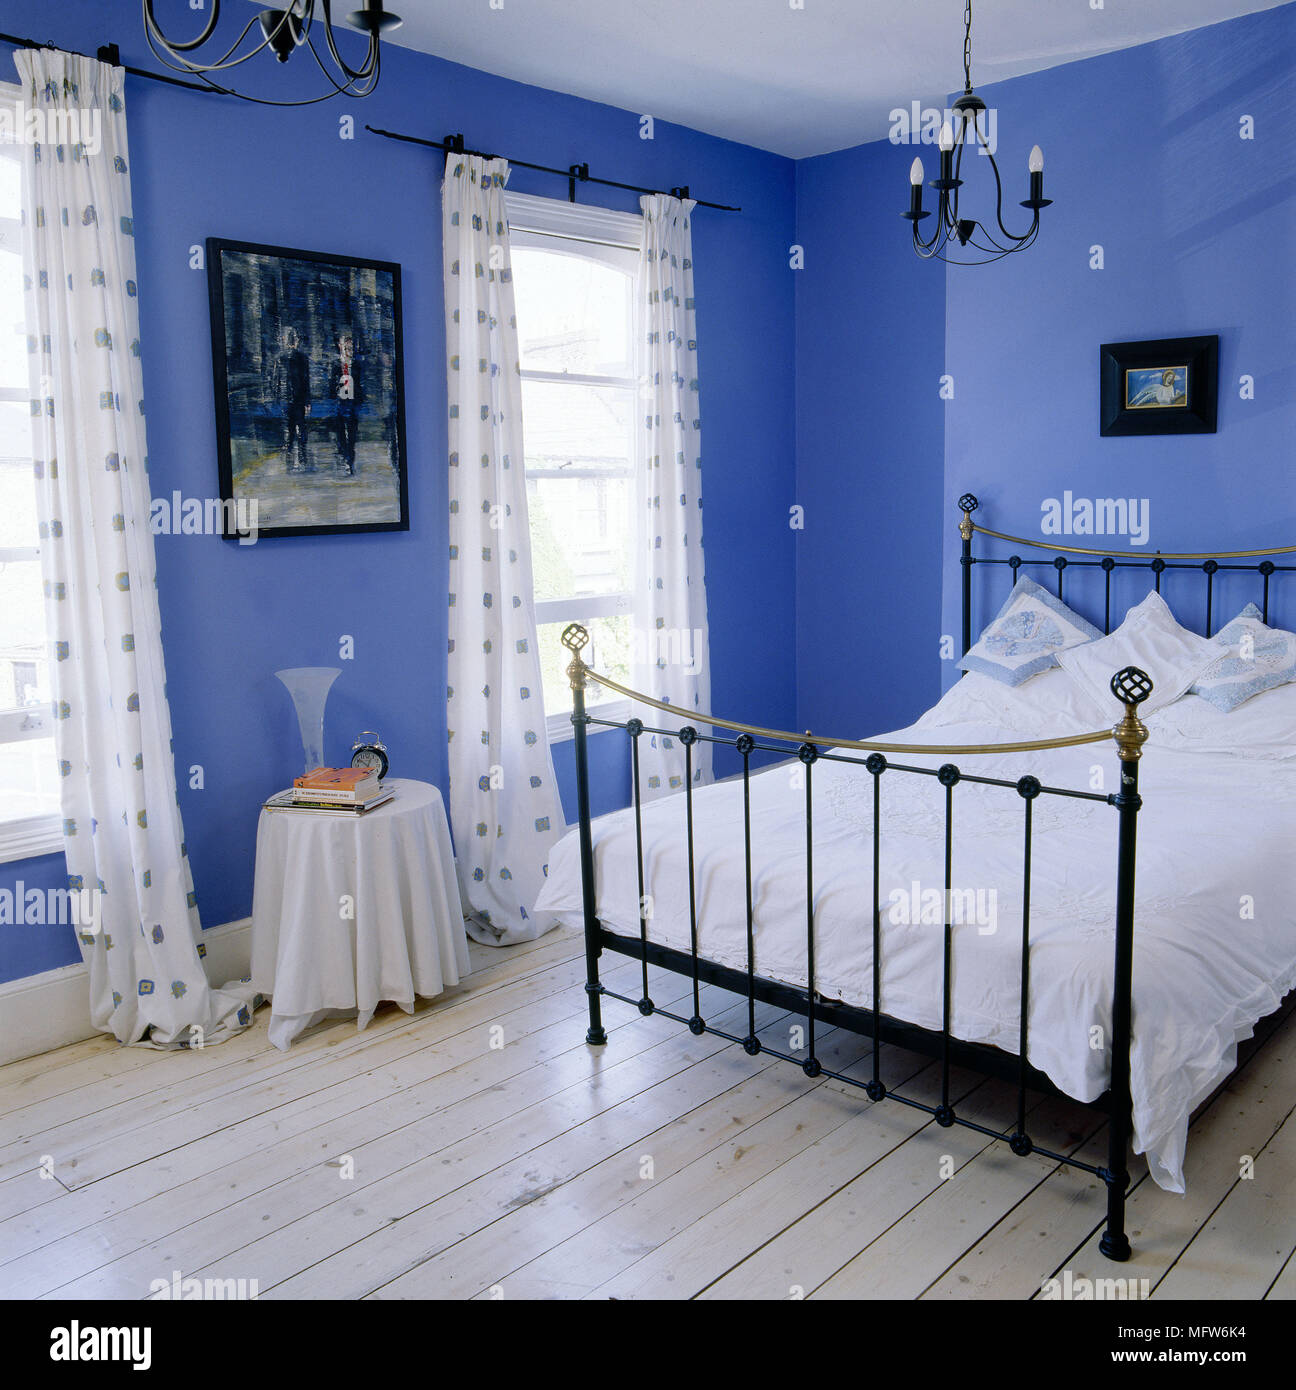 Modern Blue Bedroom With Stripped Floorboards Black Wrought Iron Bed And Patterned Curtains Stock Photo Alamy